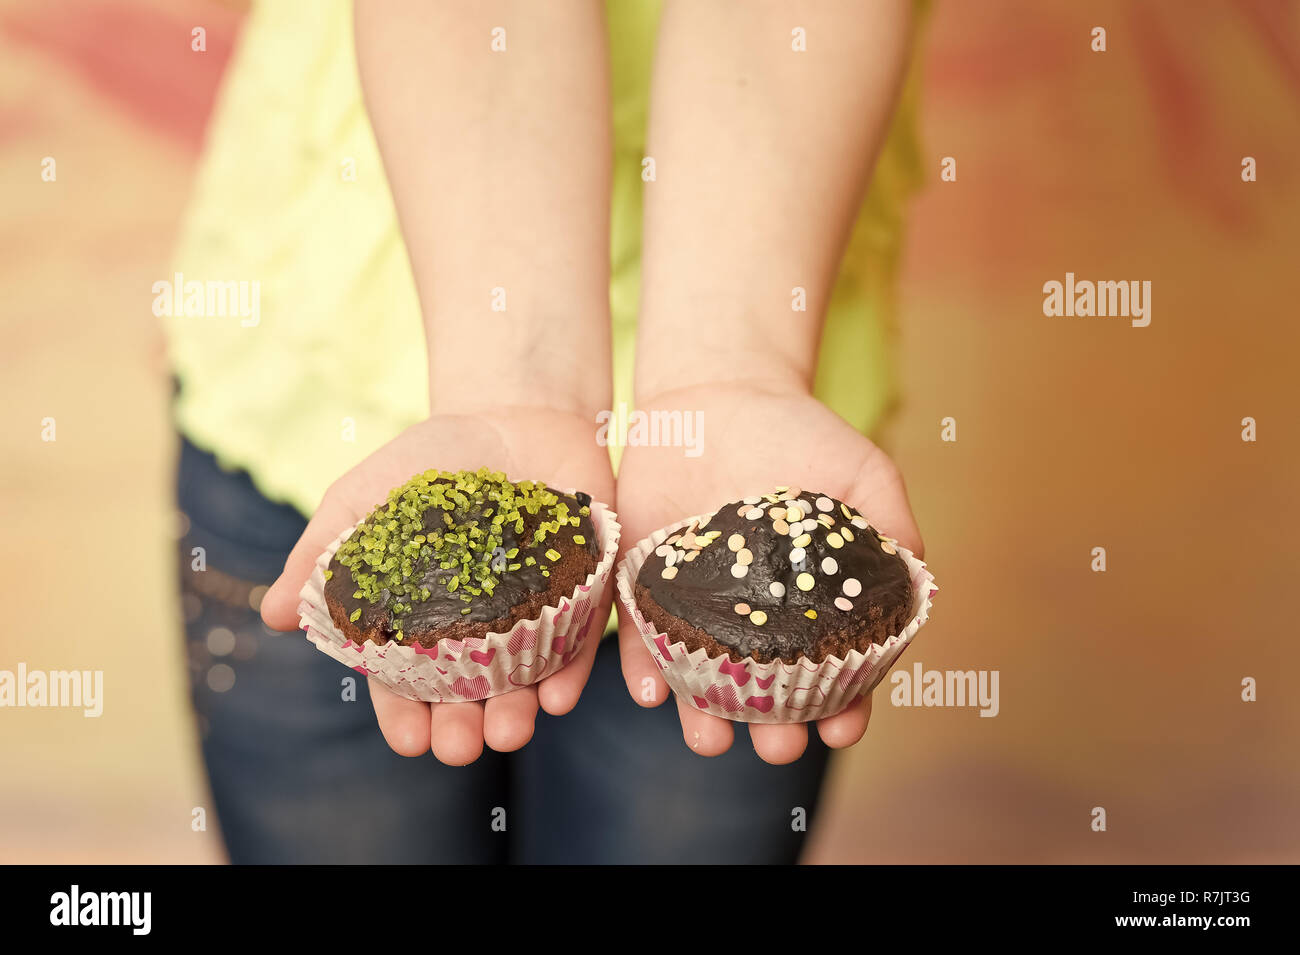 Two cupcakes of chocolate in childs hand on colorful blurred background. Confectionery, dessert, pastries, food, unhealthy diet concept. - Stock Image